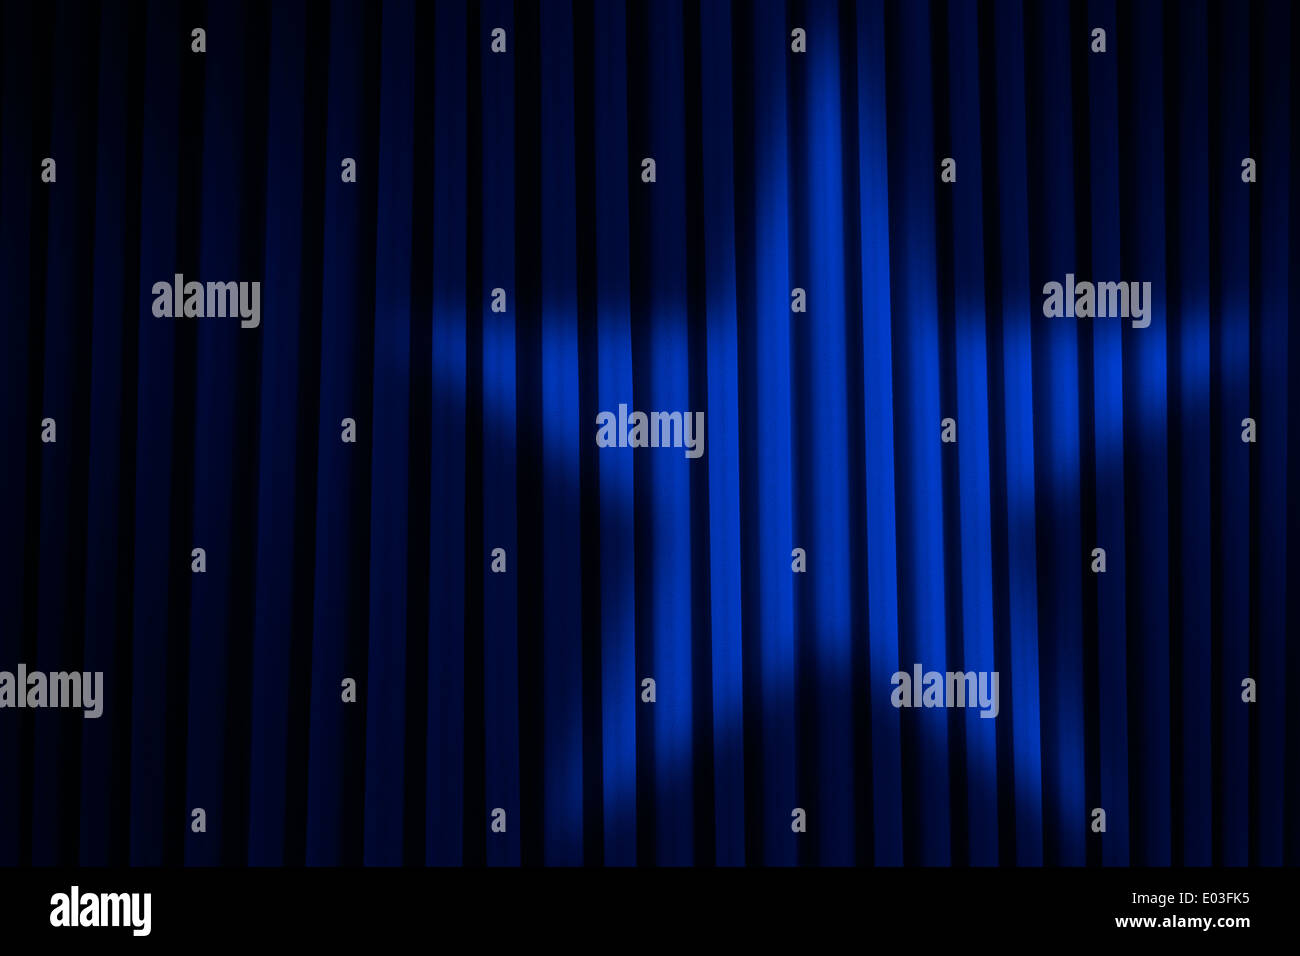 Bl blue stage curtains background - Bl Blue Stage Curtains Background Bl Blue Stage Curtains Background Bl Blue Stage Curtains Background